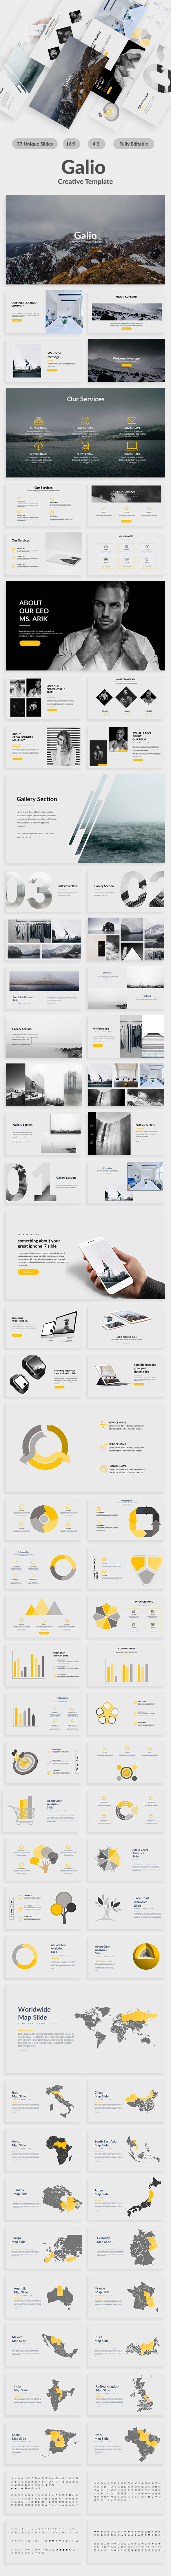 Galio Creative Google Slide Template - Google Slides Presentation Templates